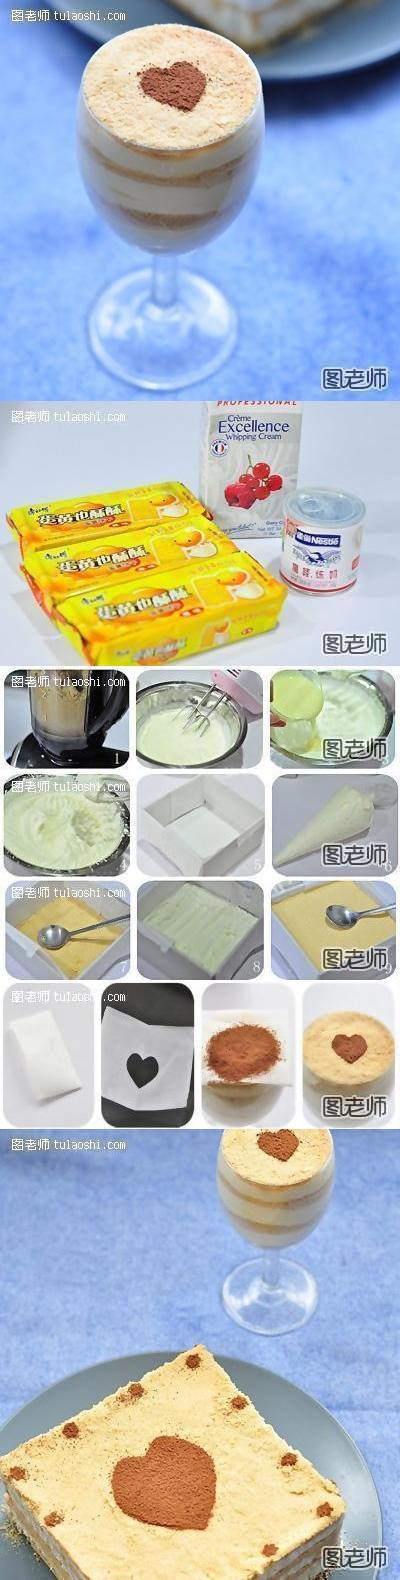 How to make your own valentine desert Authentic Macau sawdust cake step by step DIY instructions